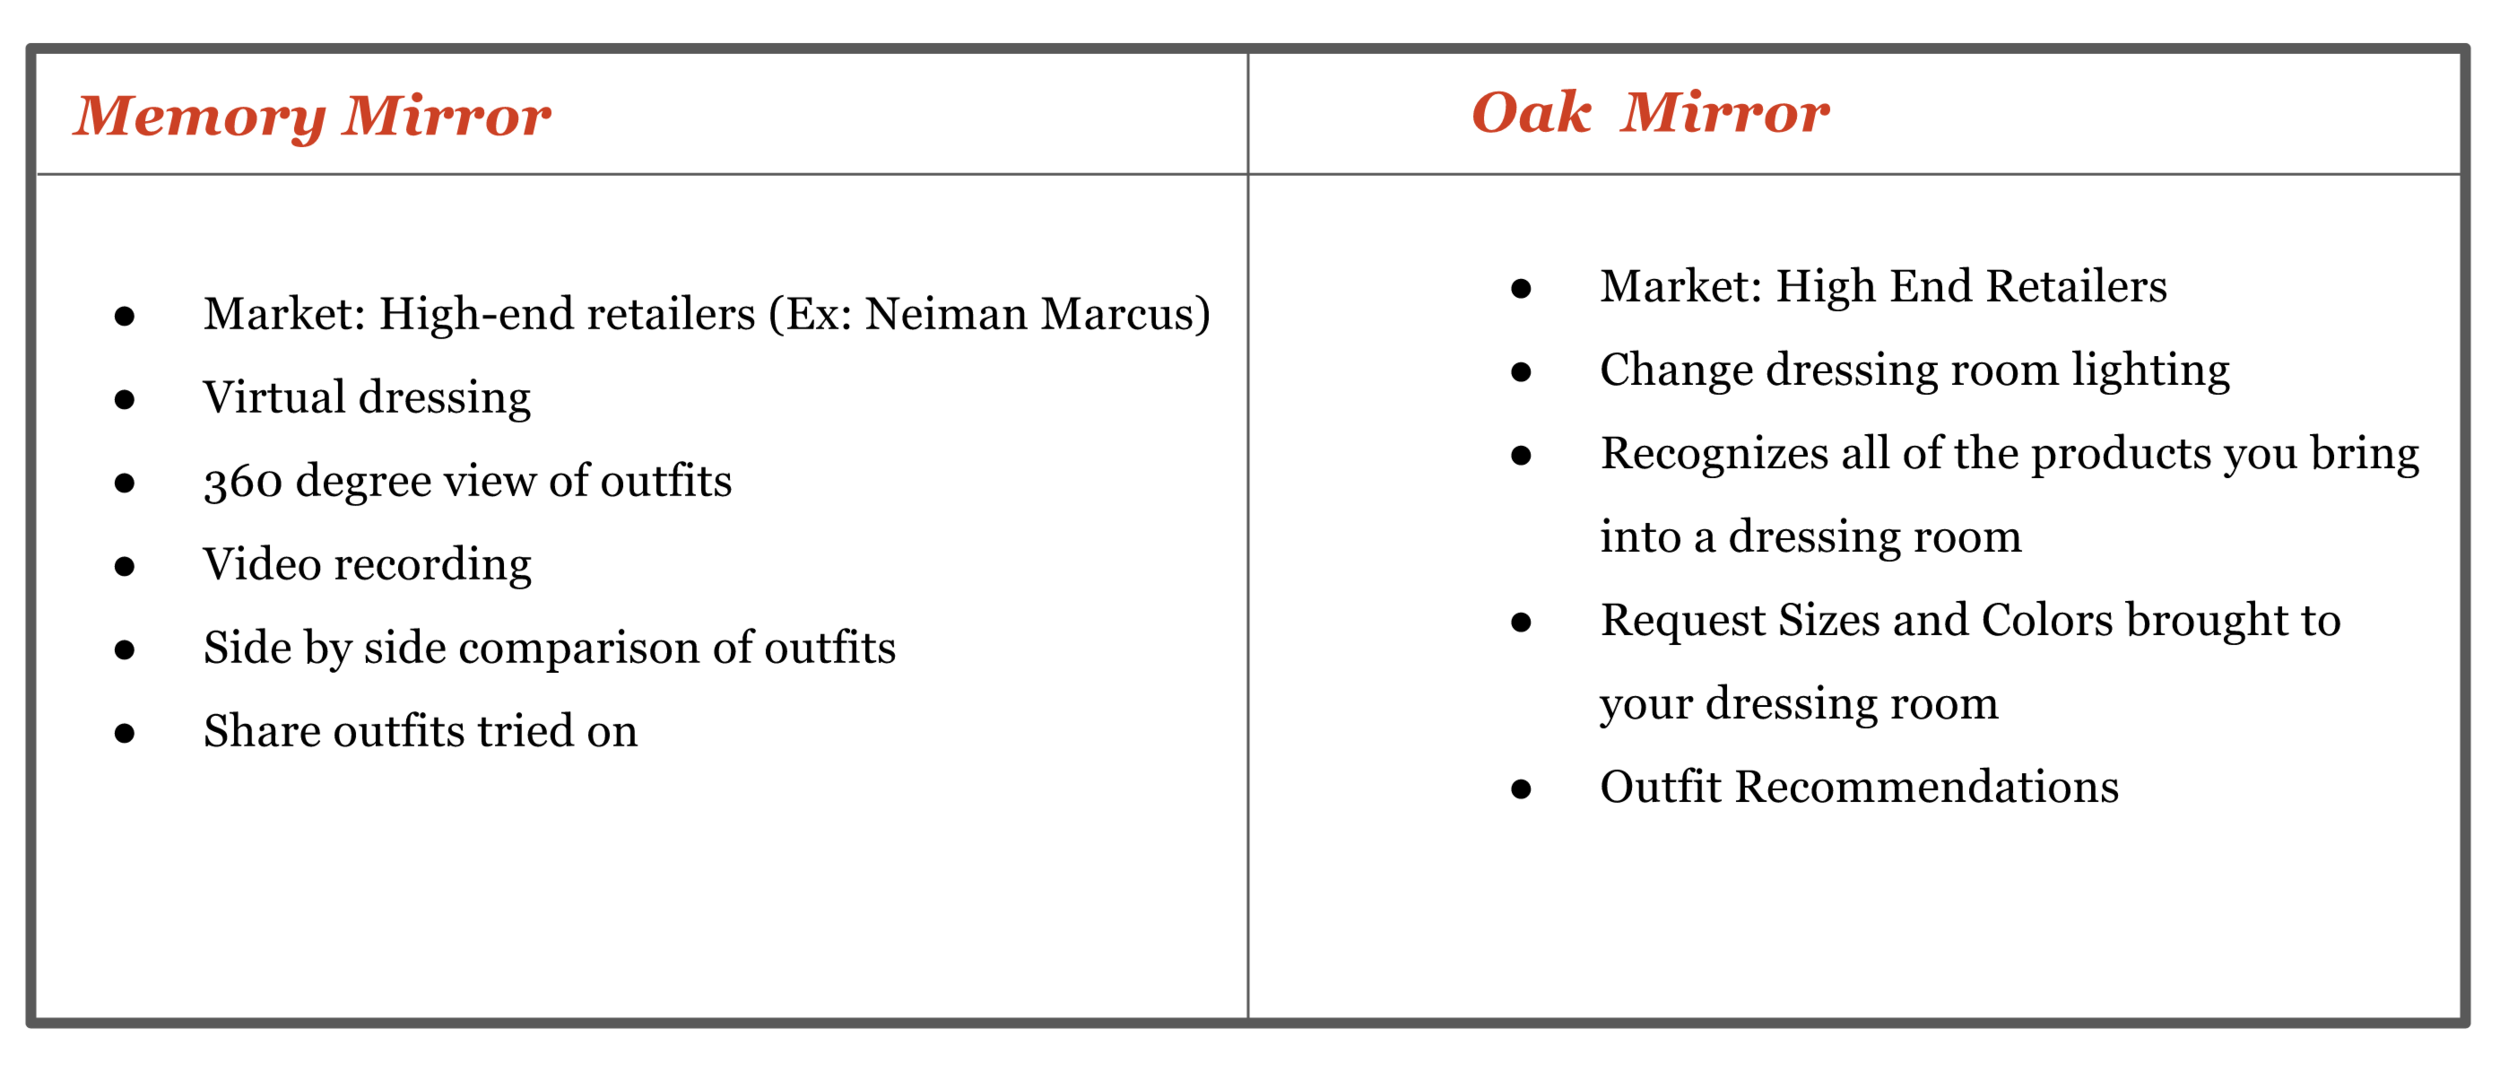 Results from a competitve analysis of two companies catering tot he dressing room space.